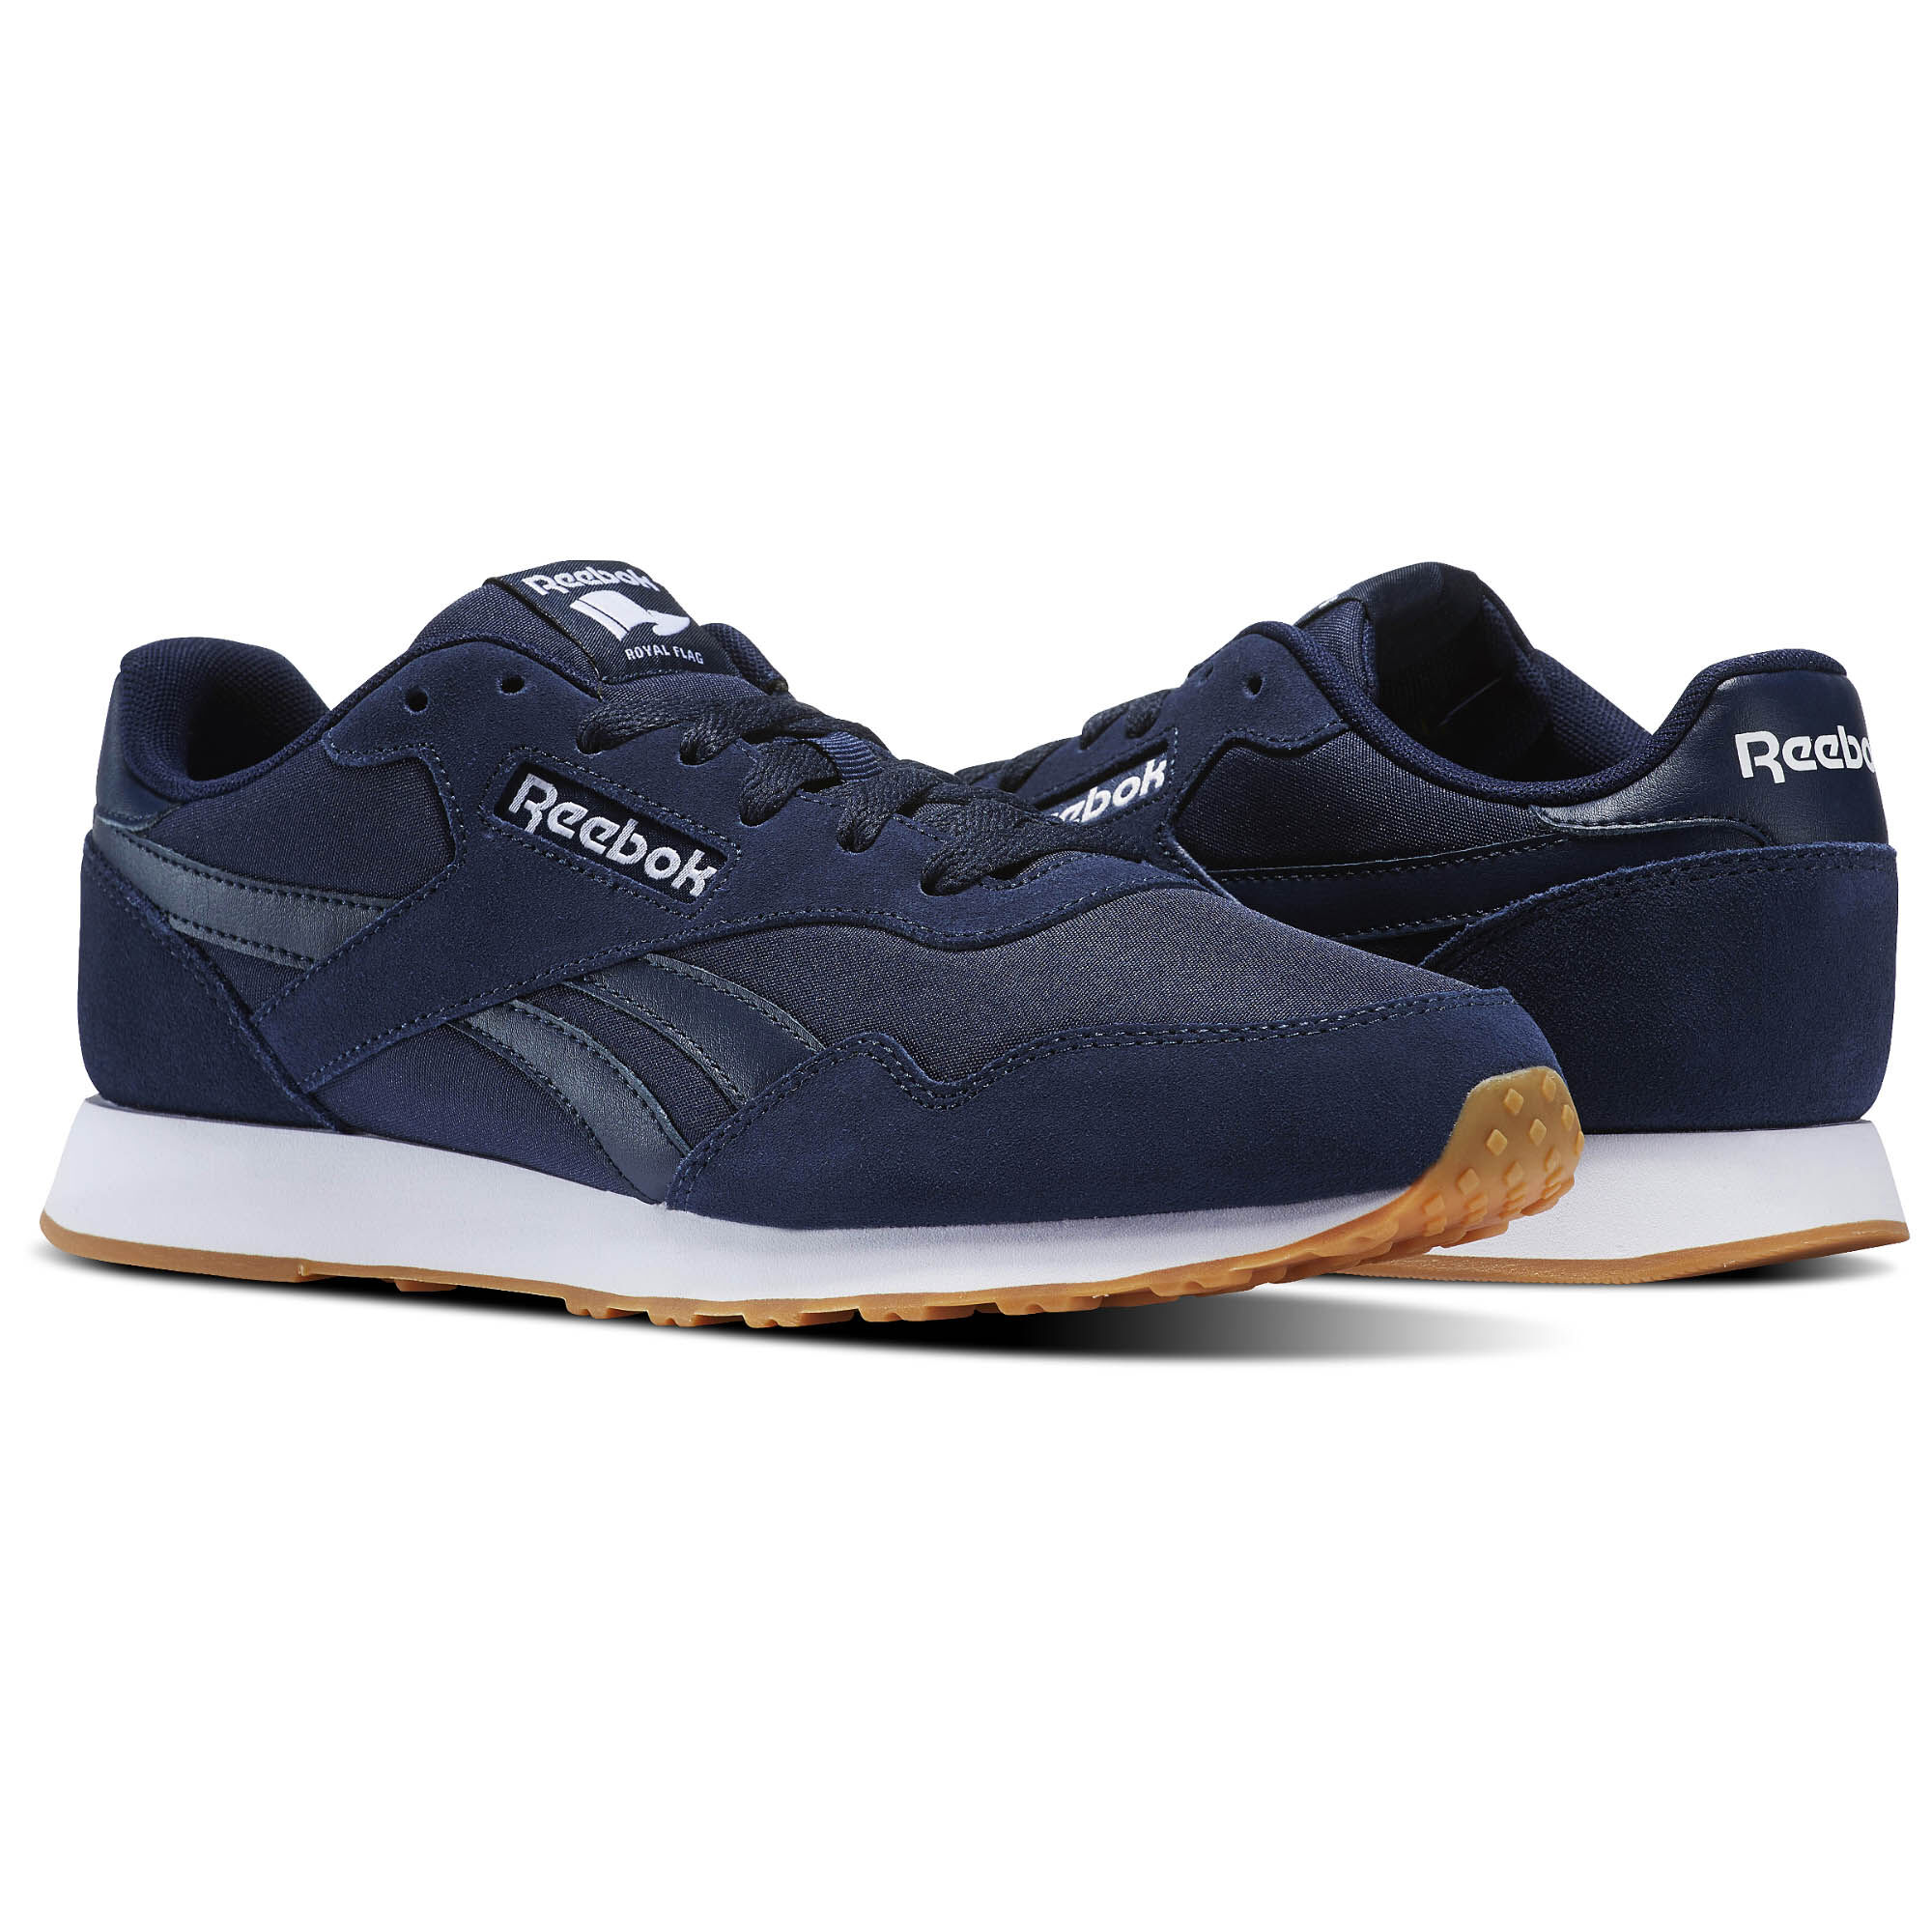 Reebok - Reebok Royal Ultra Collegiate Navy/White/Gum BS7972. Read all 36  reviews. Men Classics